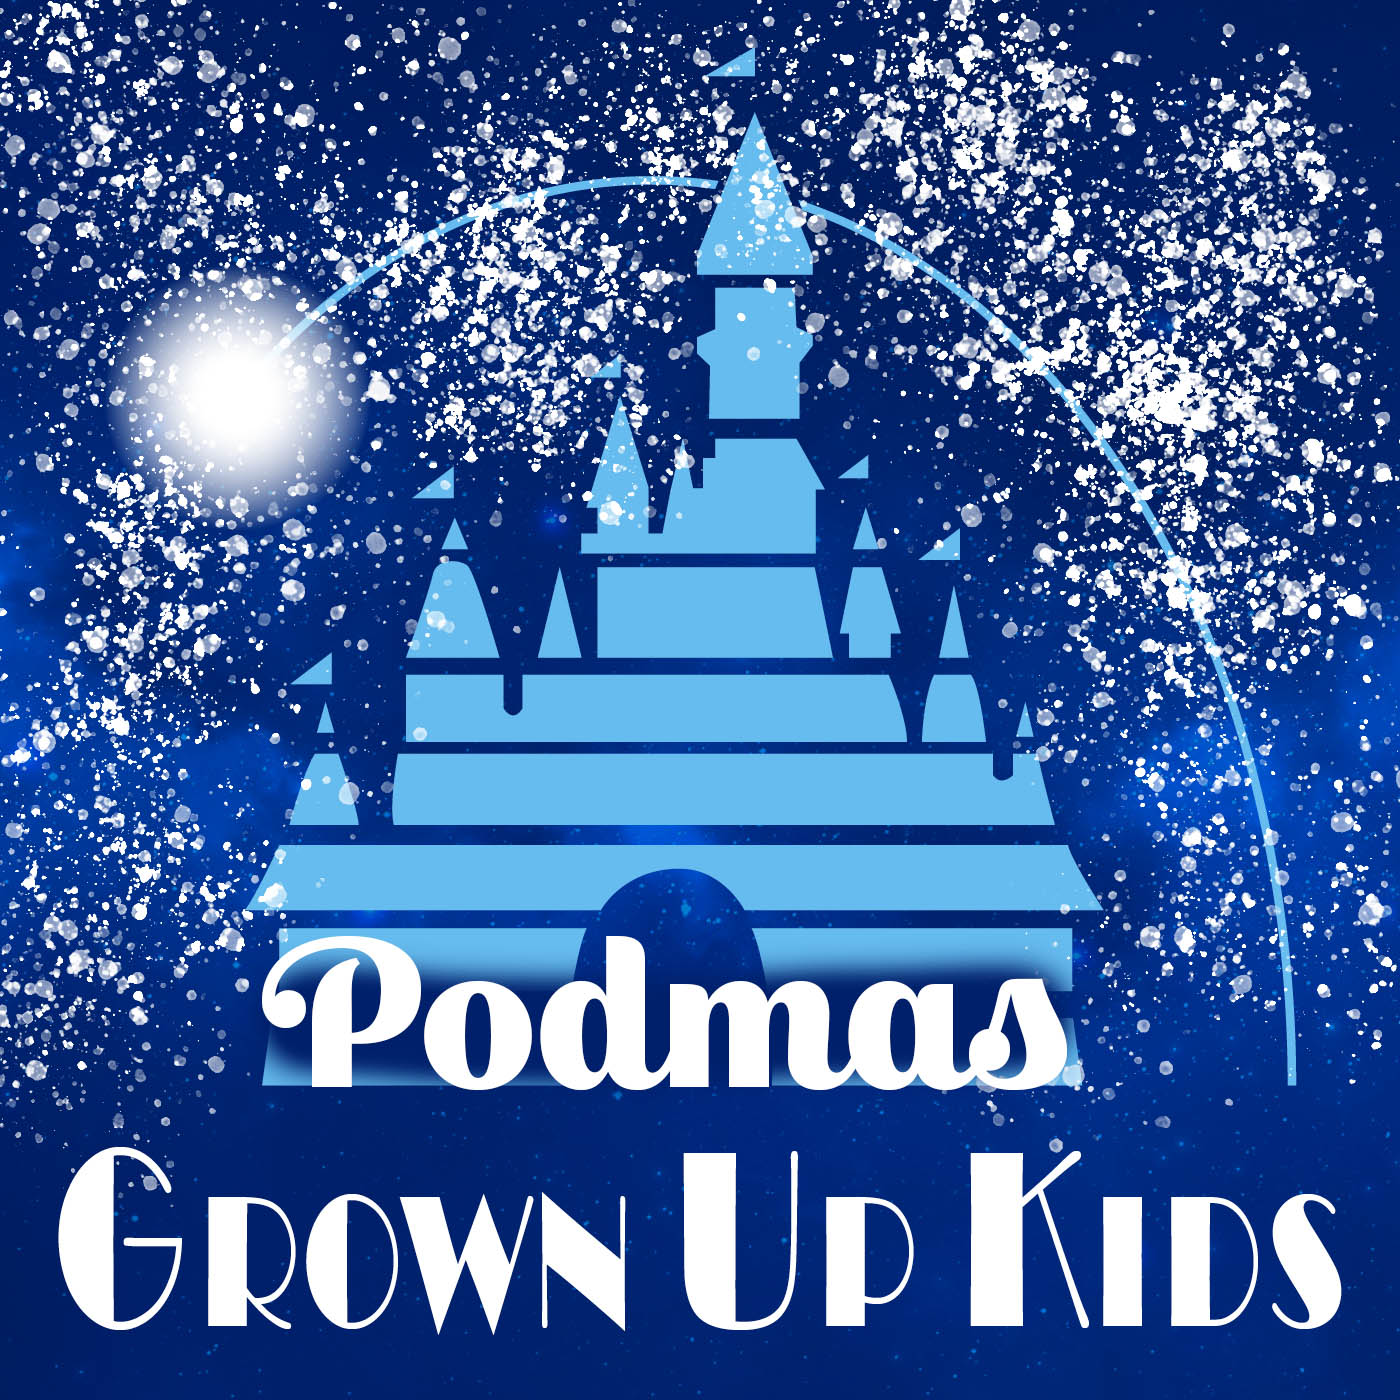 Grown Up Kids - PODMAS Day 25 - In Search of the Castaways